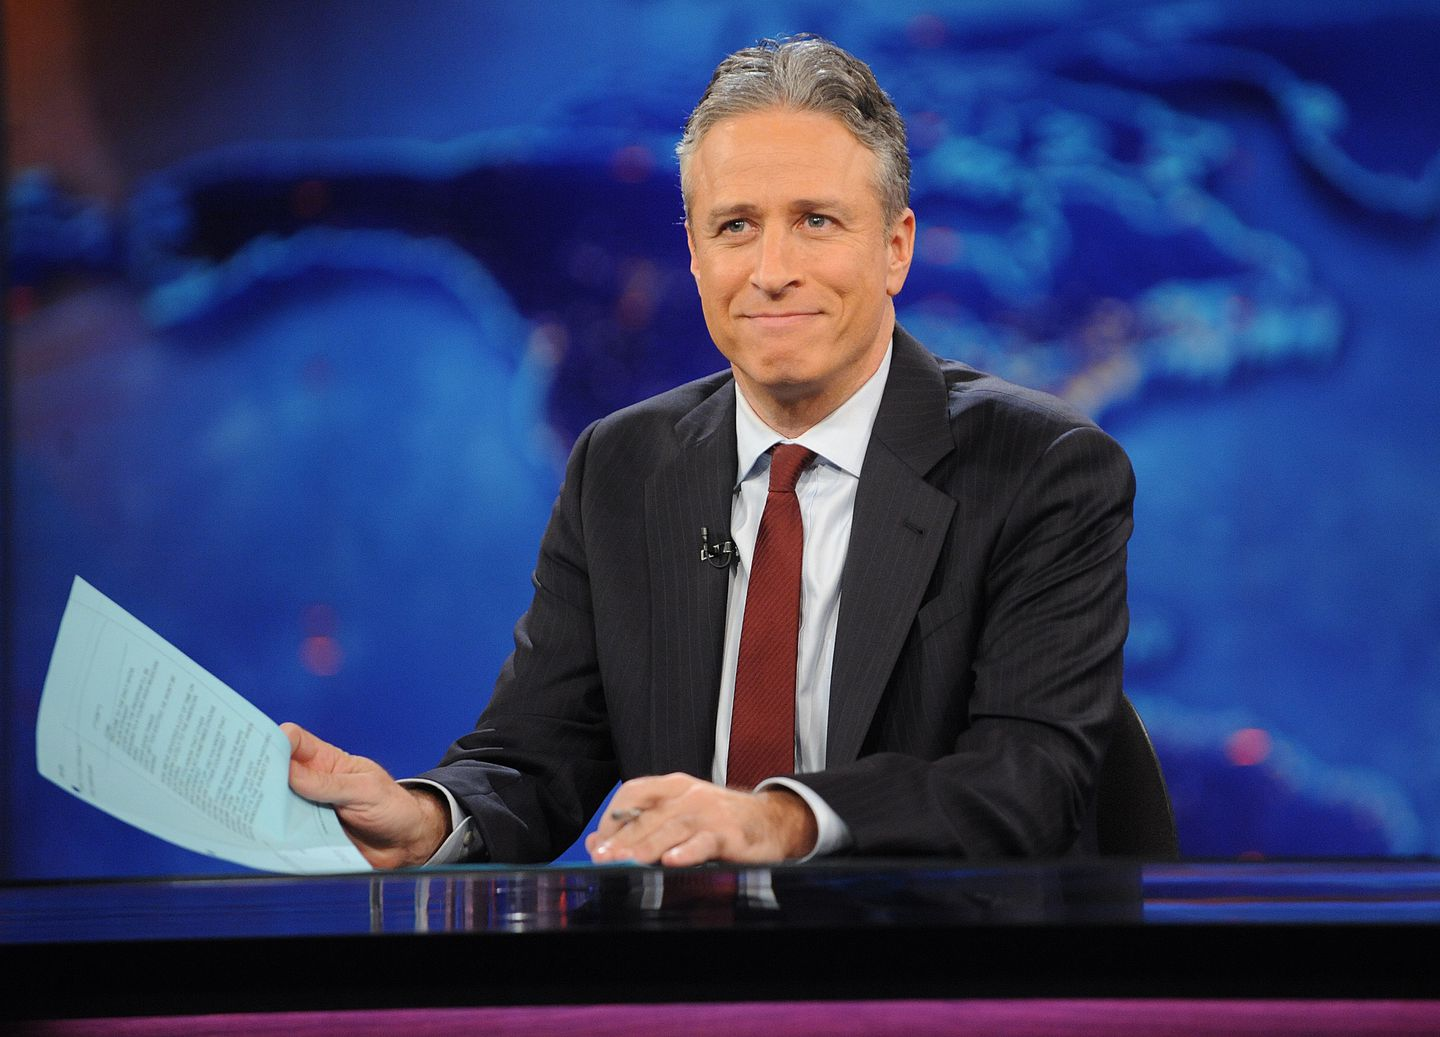 For Jon Stewart, early days at 'The Daily Show' were a trial by fire - The Boston Globe